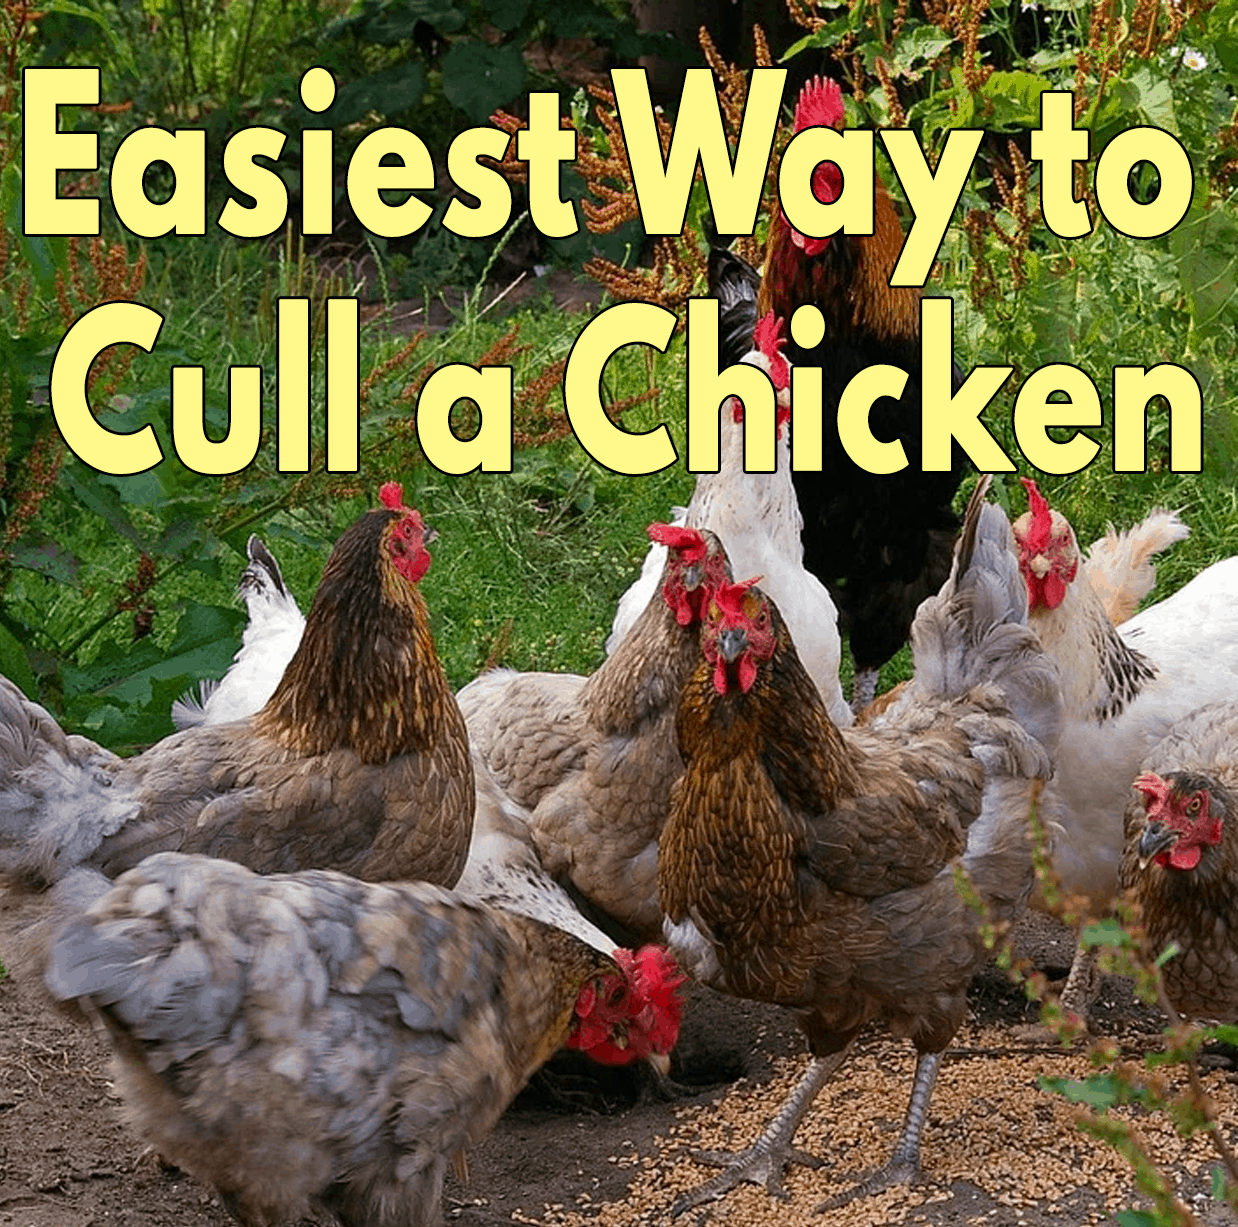 Easiest Way to Cull a Chicken